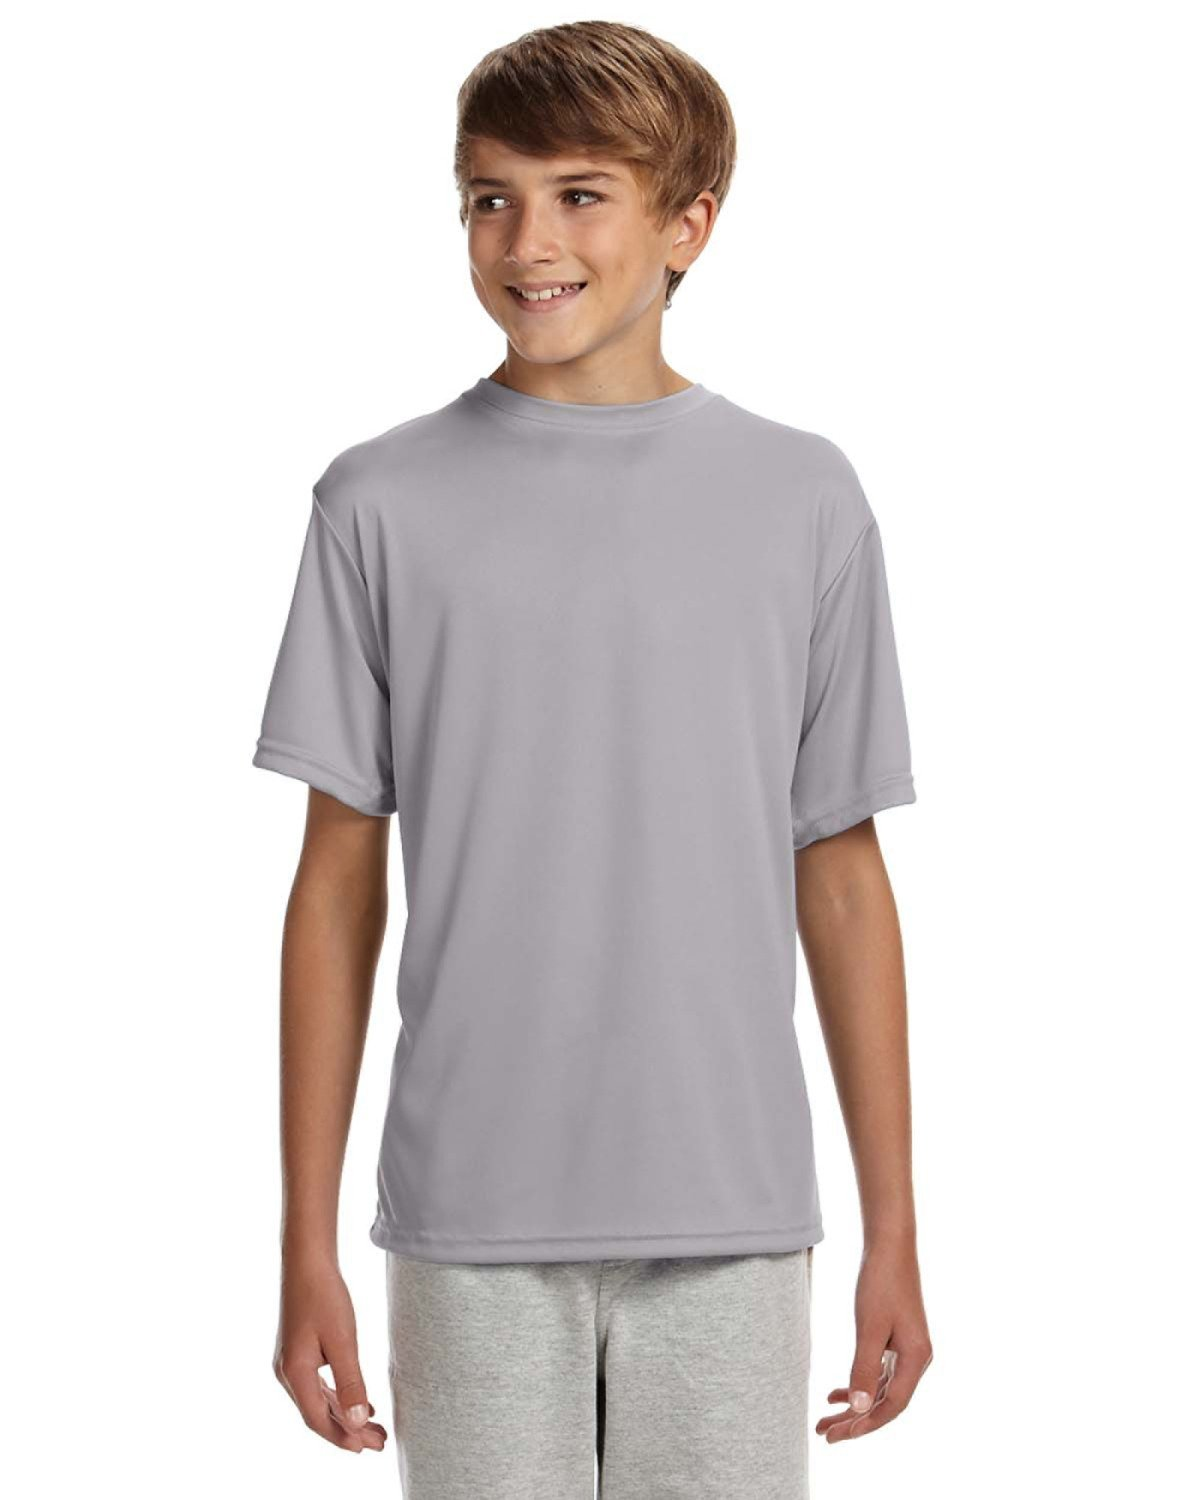 A4 Youth Cooling Performance T-Shirt SILVER